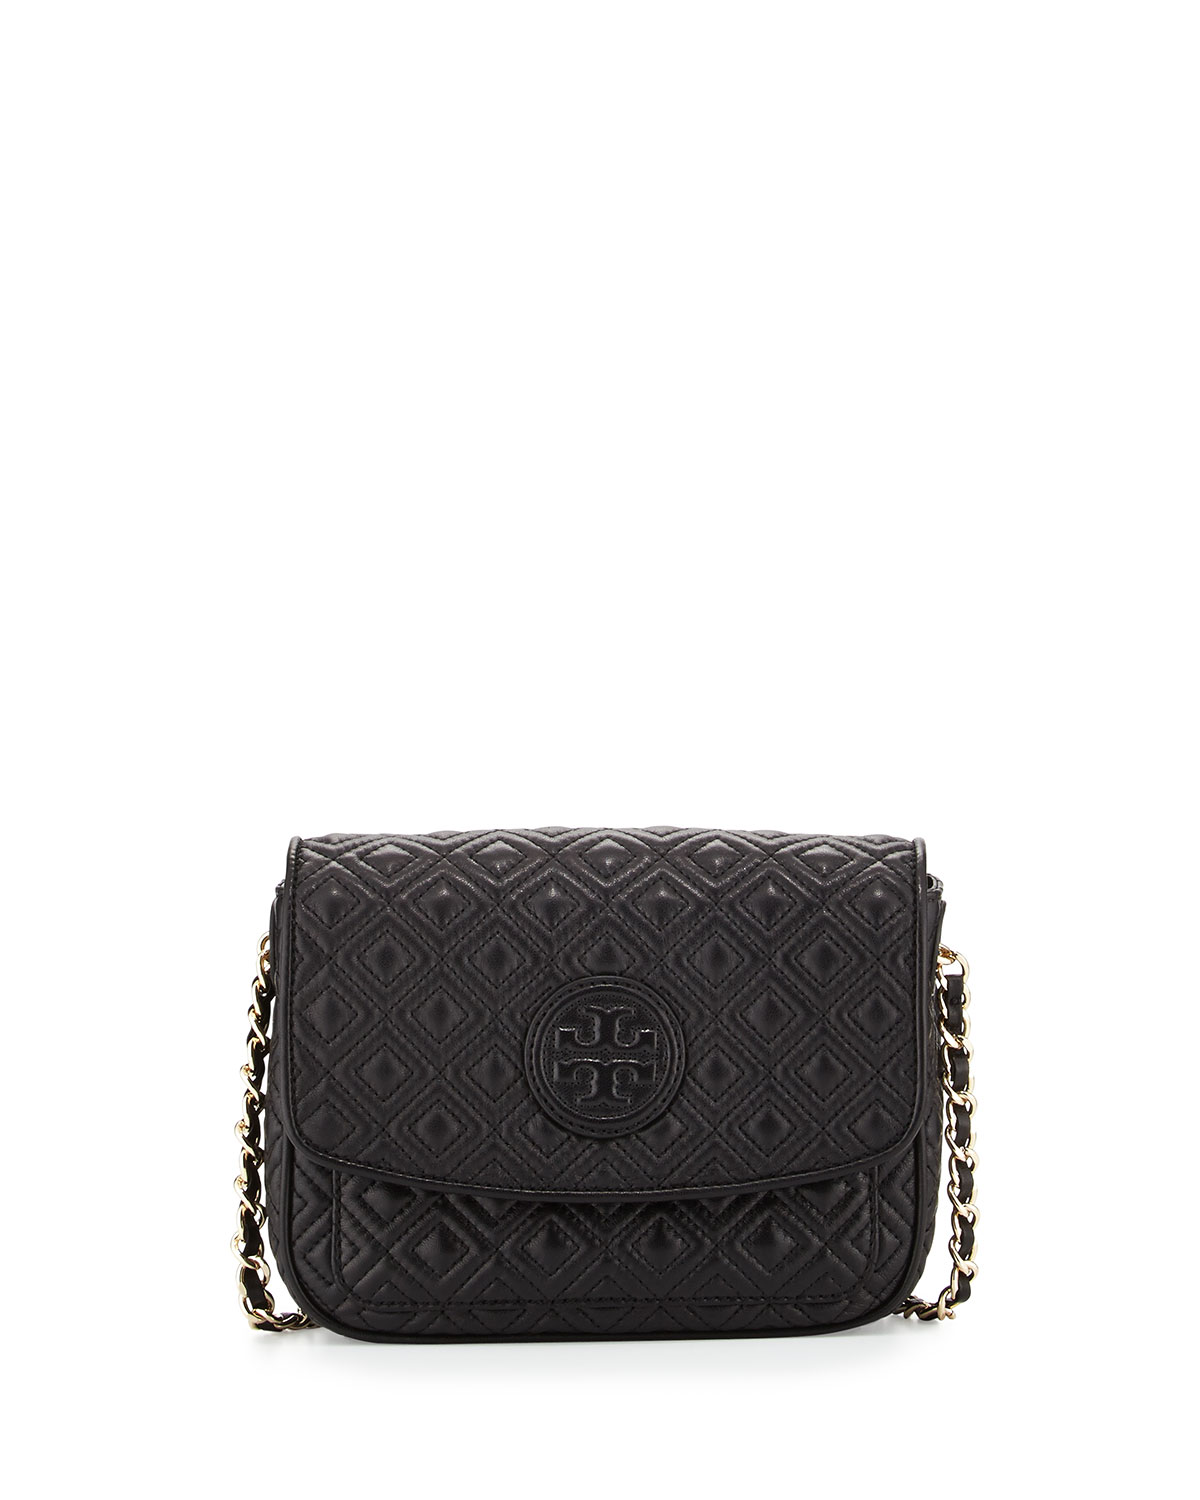 ffd1a040e21a Tory Burch Marion Quilted Mini Shoulder Bag